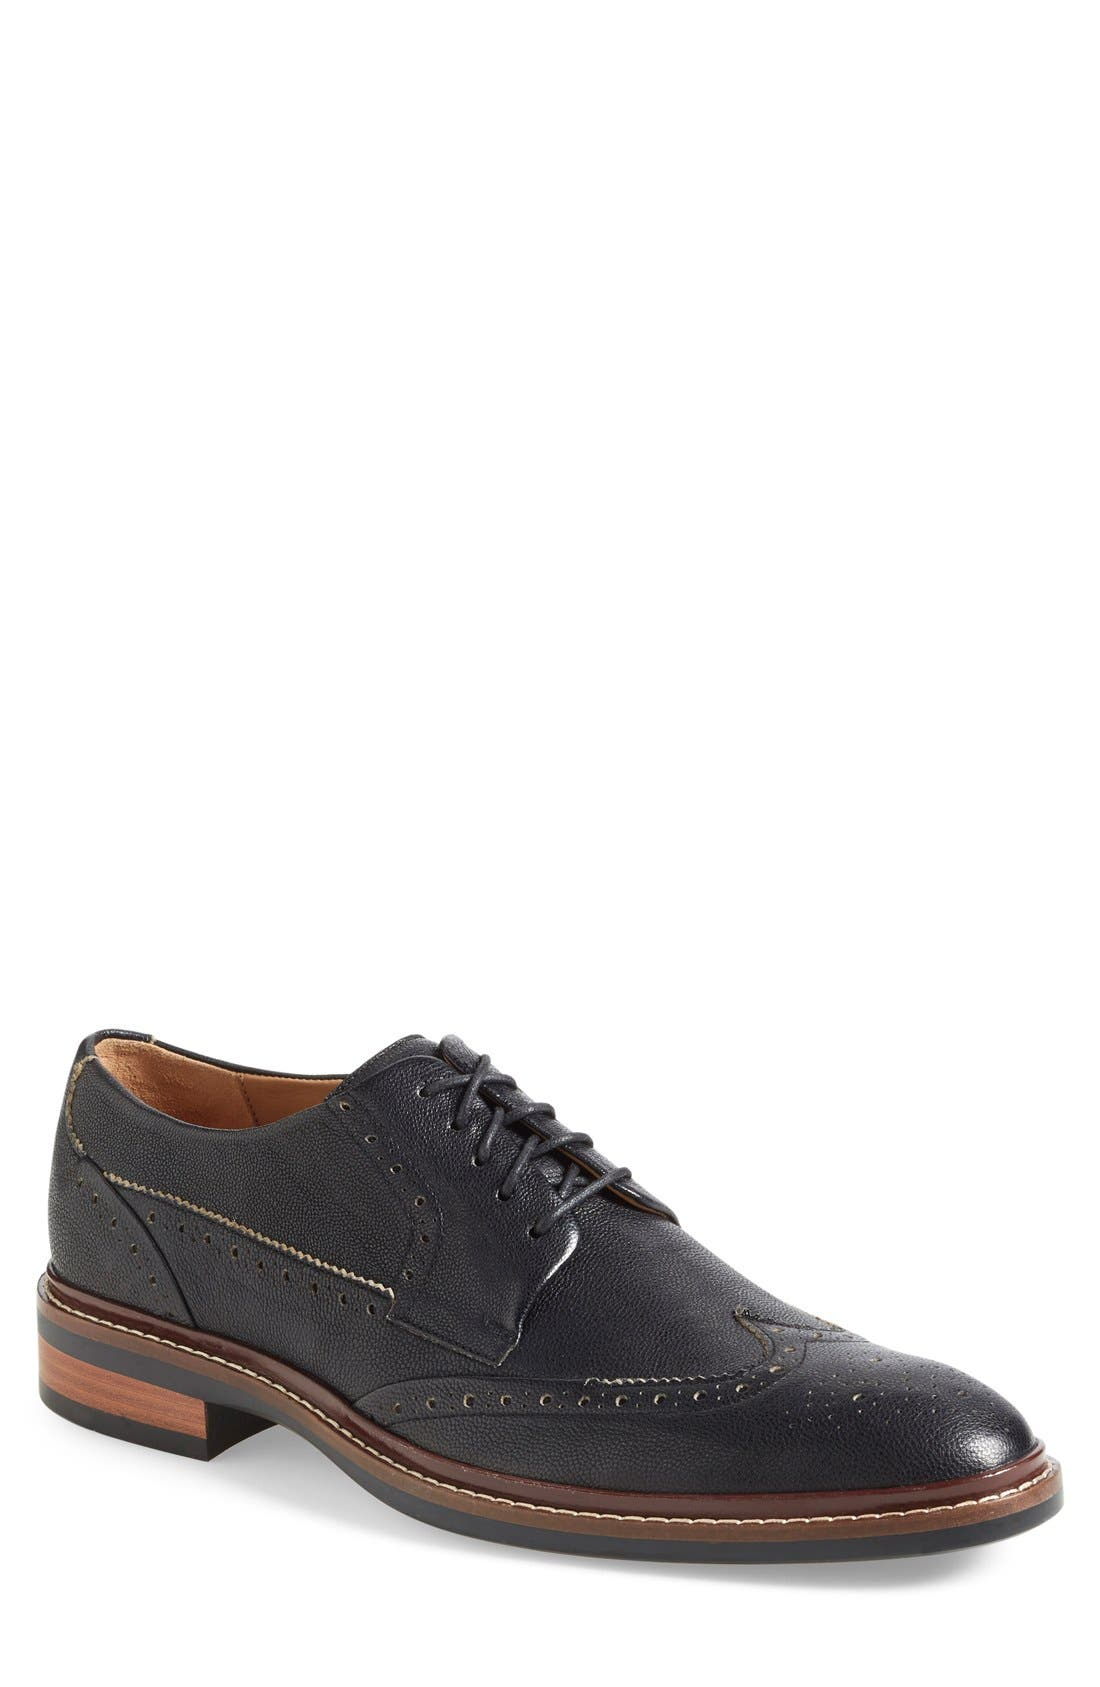 Main Image - Cole Haan Warren Welt Wingtip (Men)